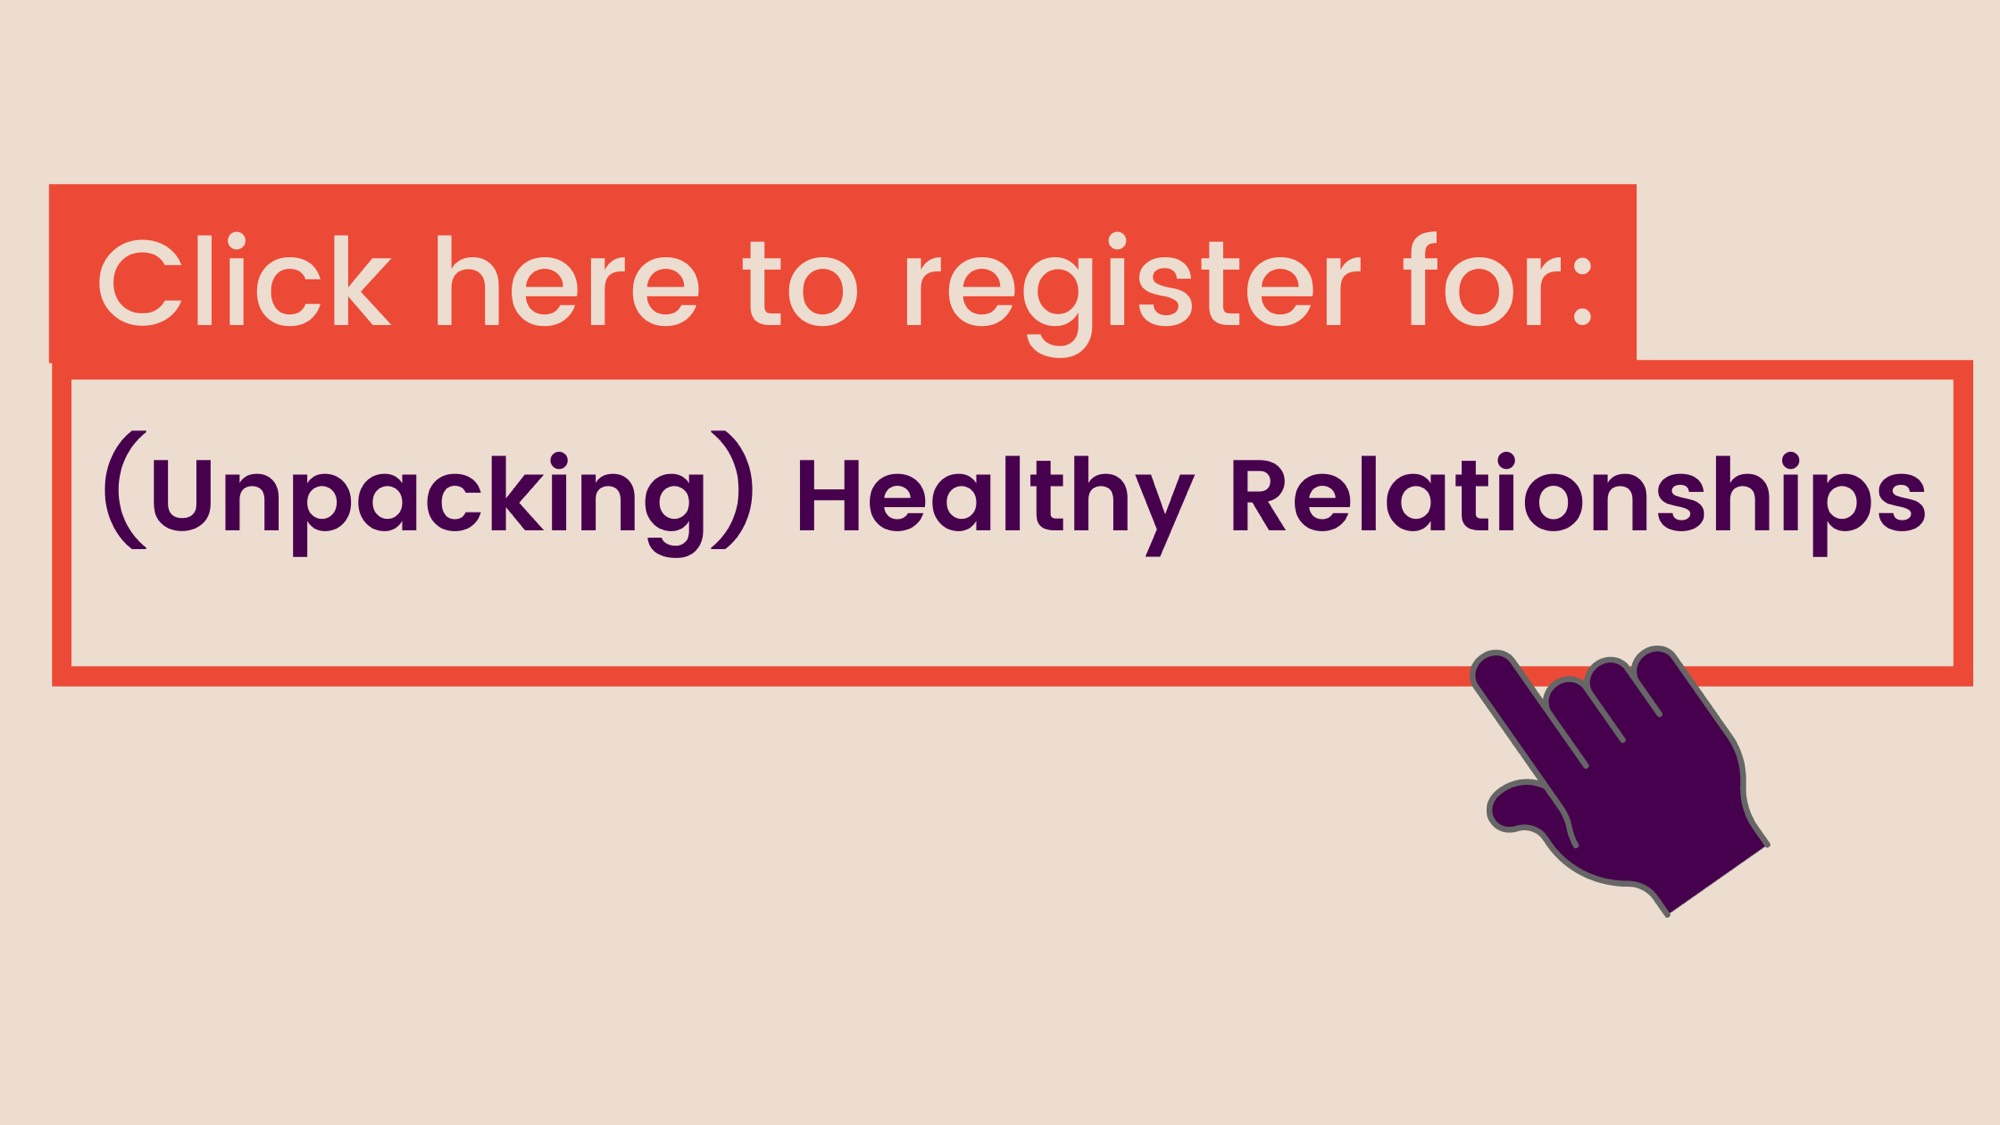 Click here to register for (unpacking) healthy relationships